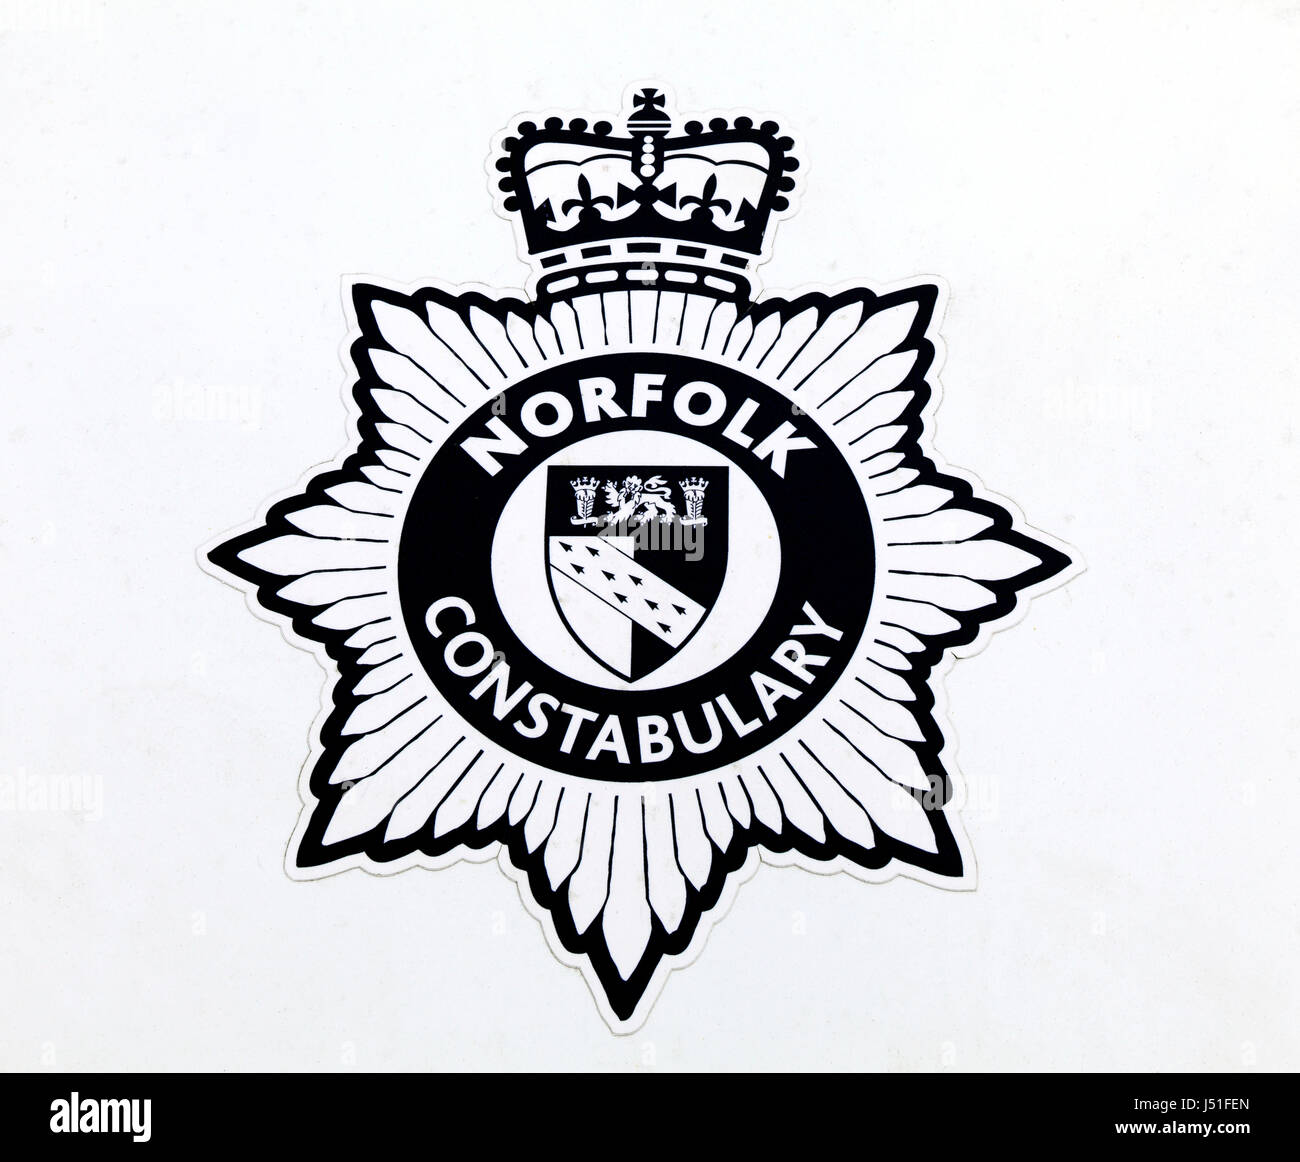 Norfolk Constabulary, logo, police car insignia, badge, English county police force, England UK, police forces - Stock Image